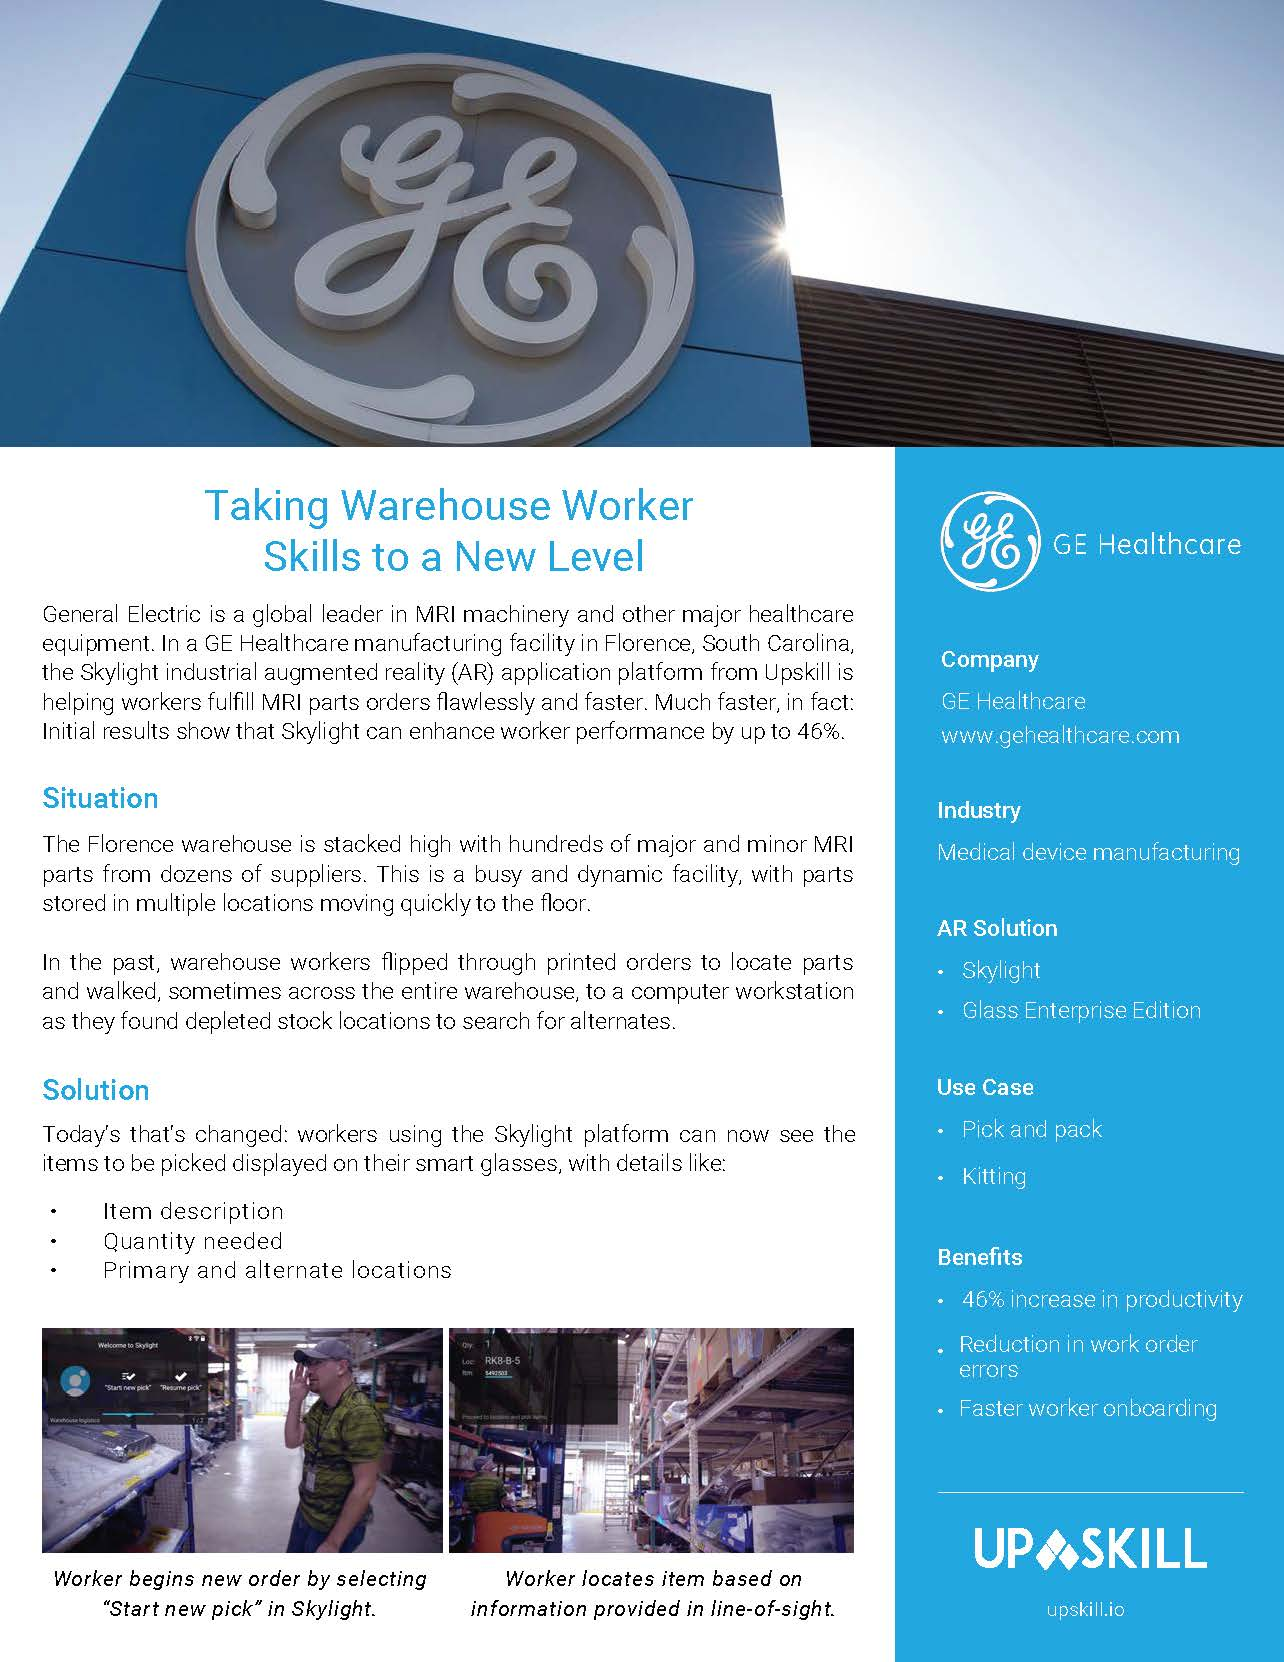 Taking Warehouse Worker Skill to a New Level with Augmented Reality